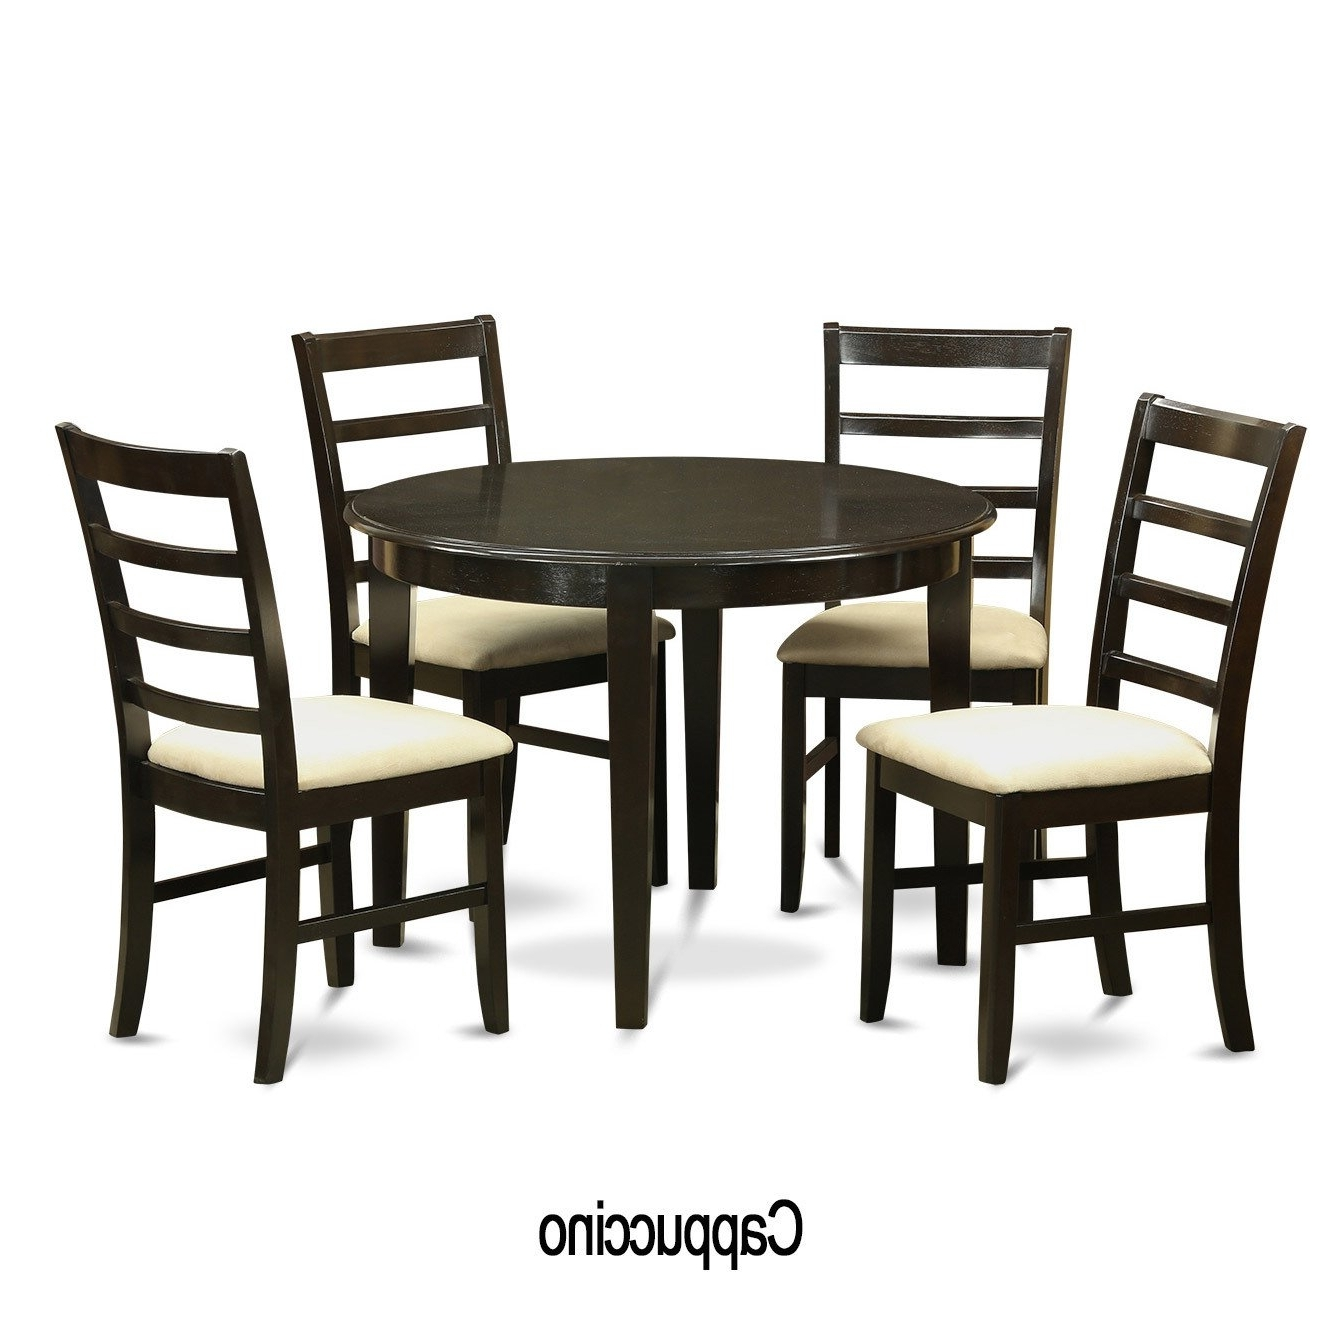 5 Piece Small Round Kitchen Table And 4 Dining Chairs – Free Throughout 2017 Small Round Dining Table With 4 Chairs (View 3 of 25)